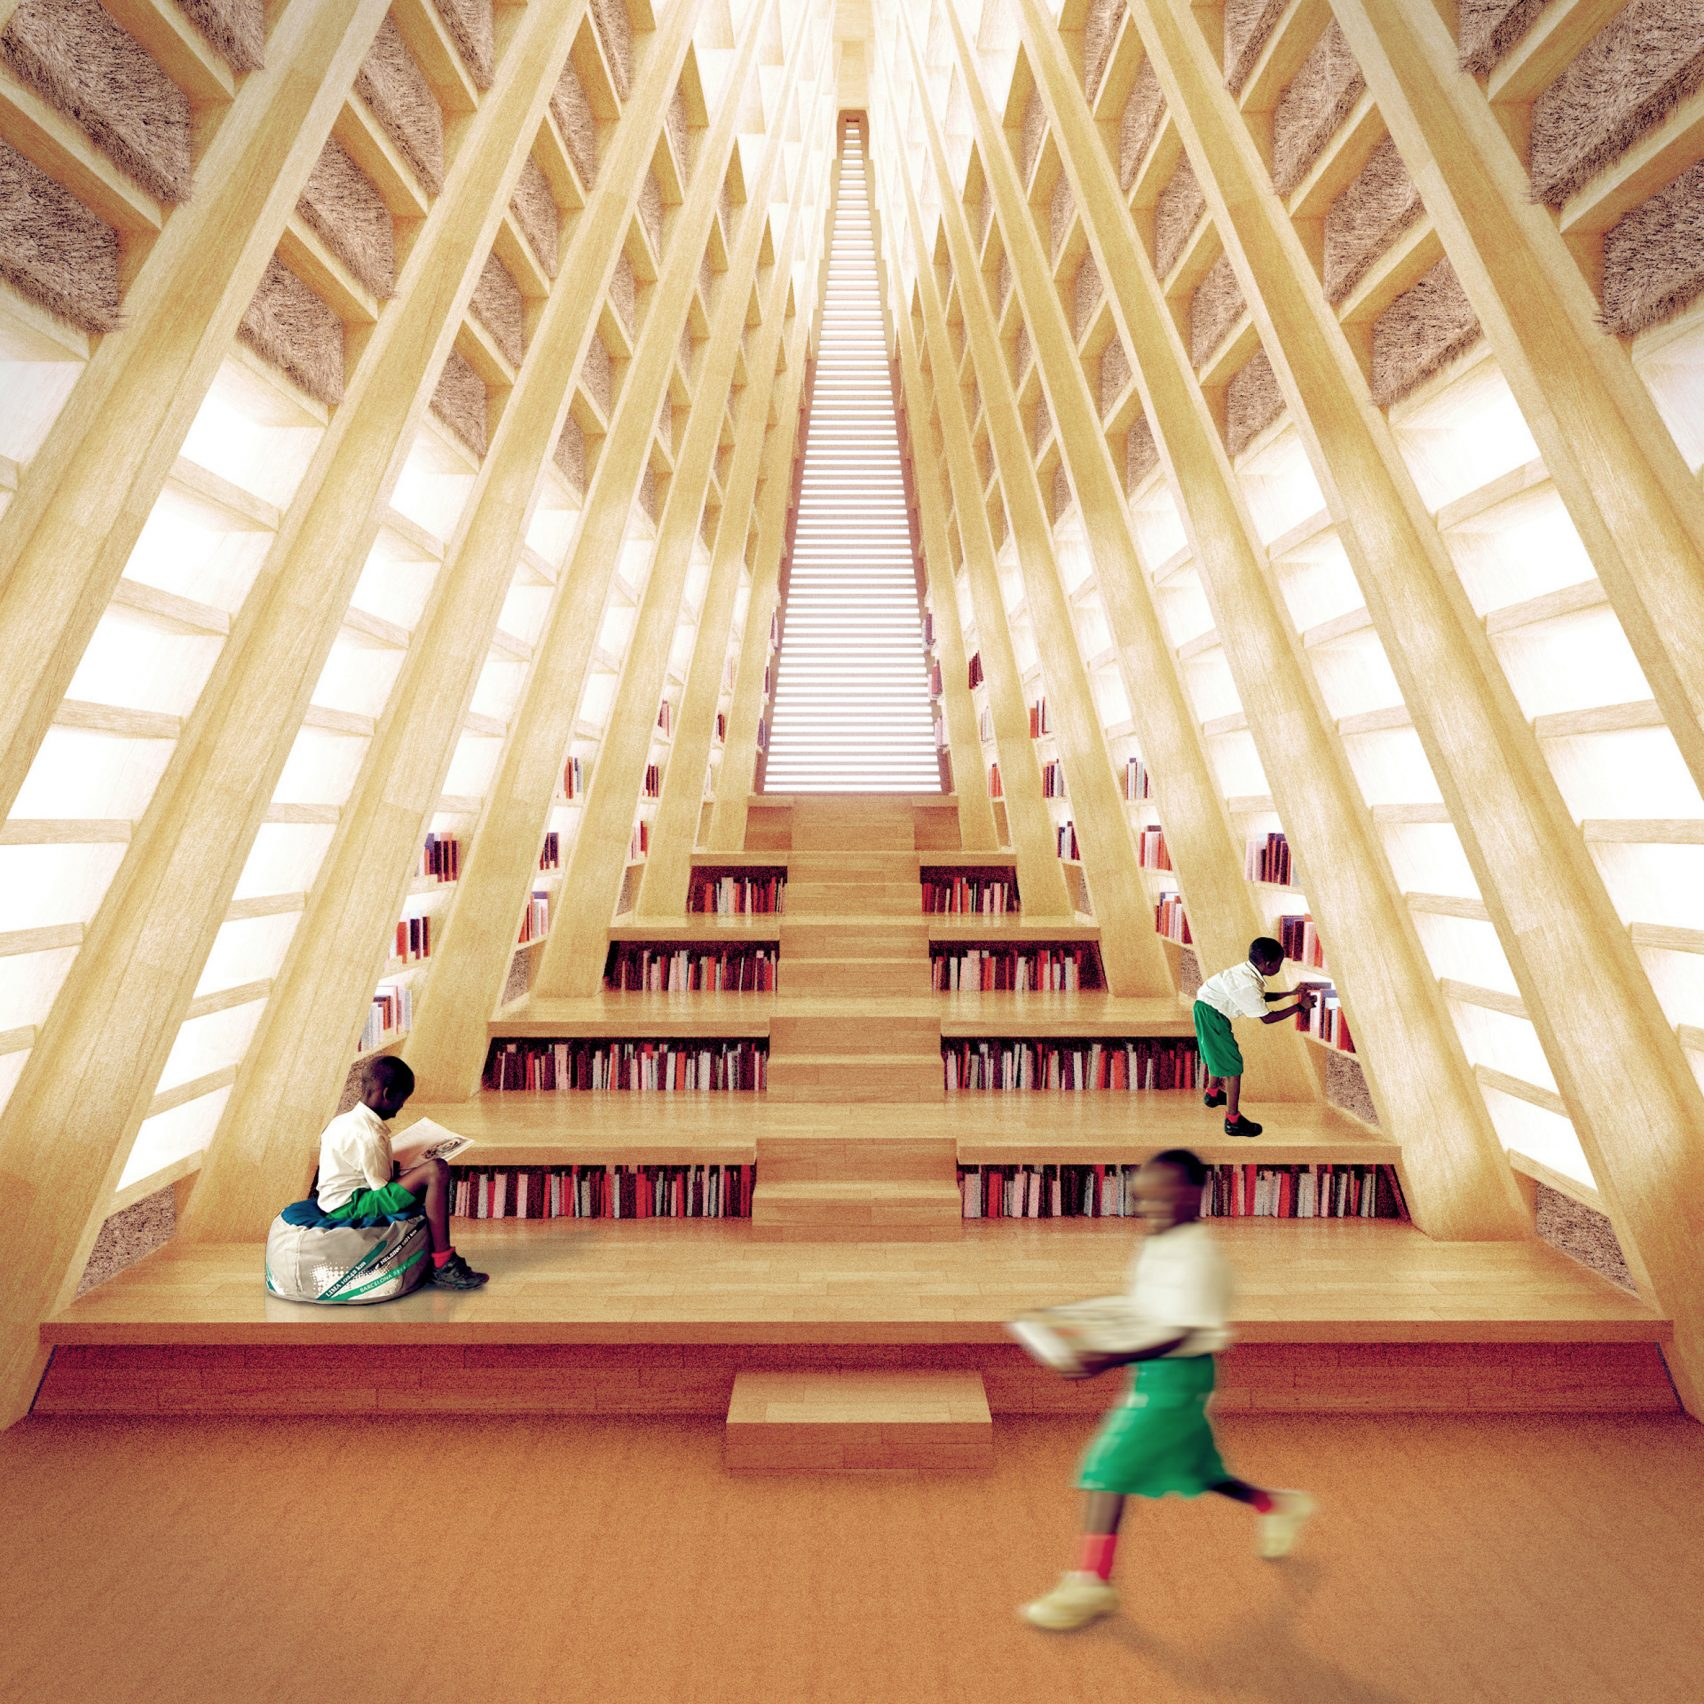 Visuals of Straw Bale School by Nudes